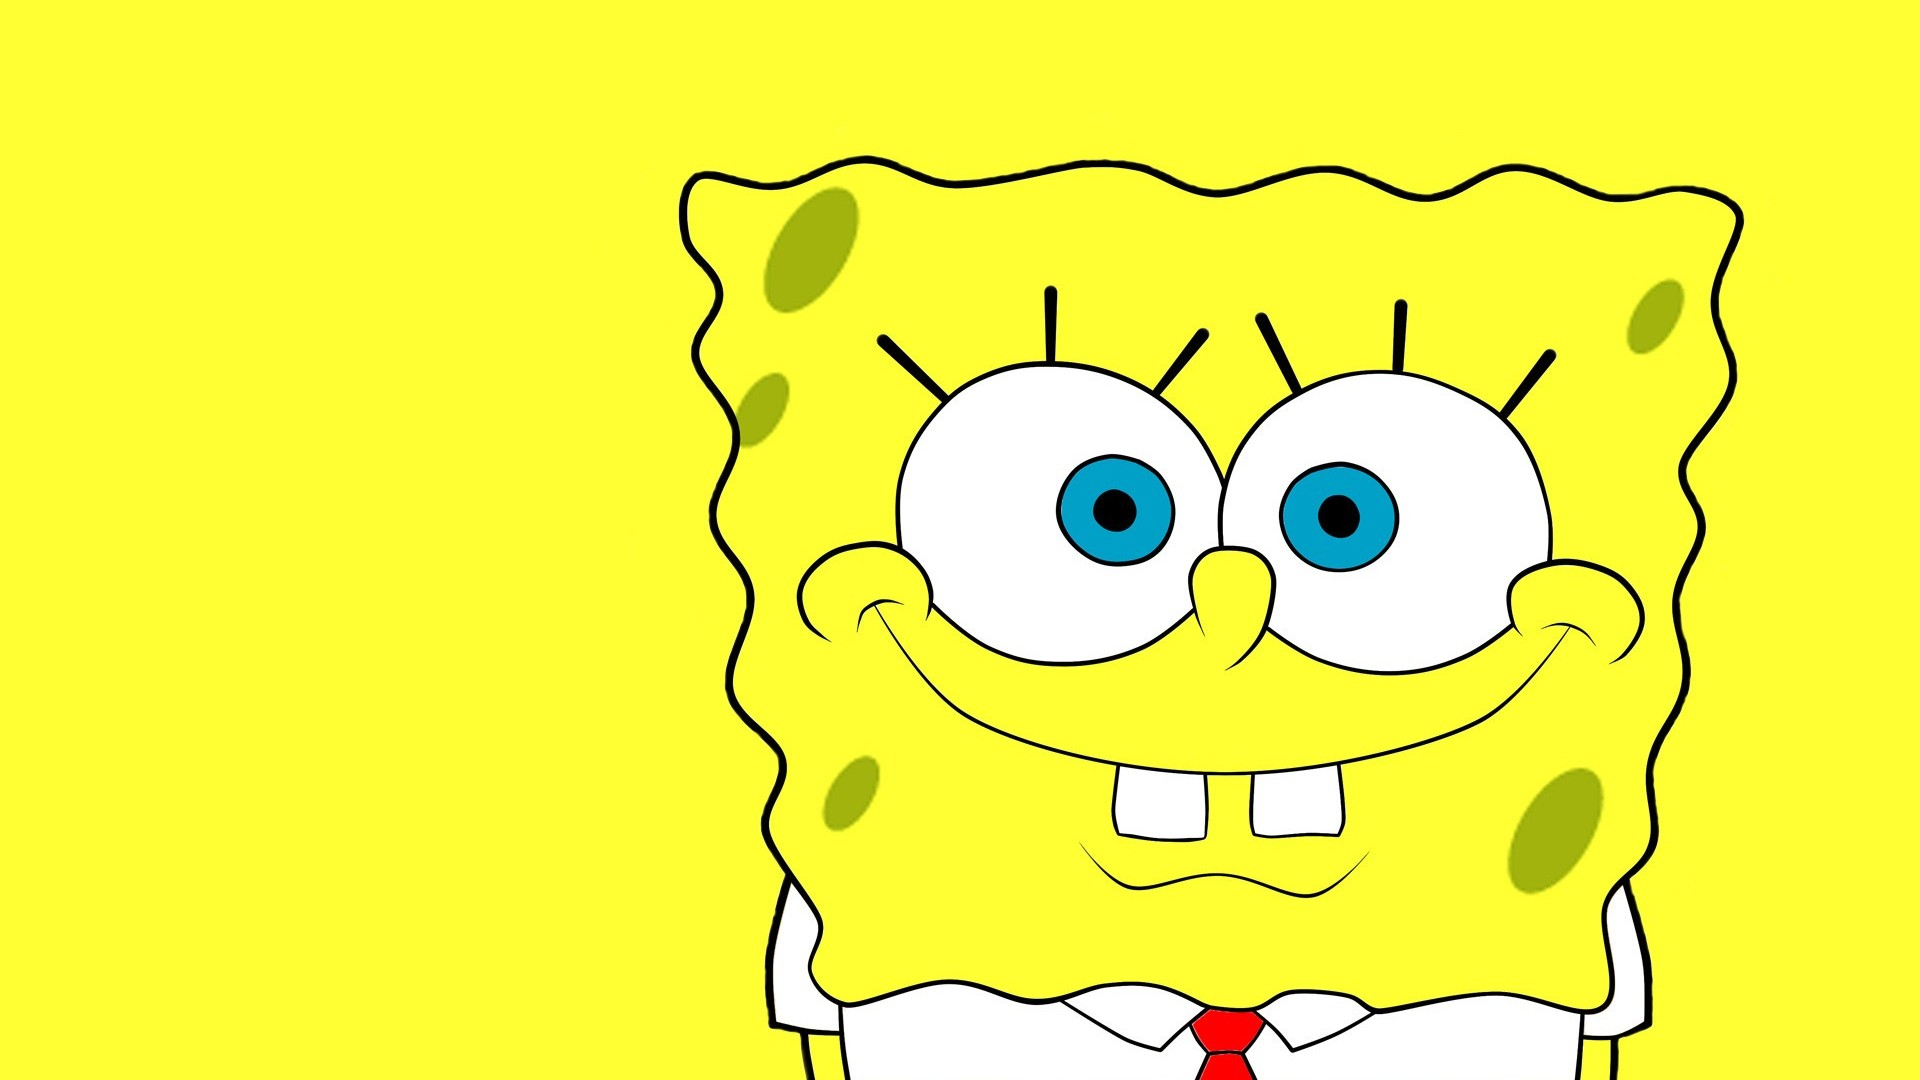 Spongebob Squarepants Wallpaper Spongebob Squarepants Wallpaper